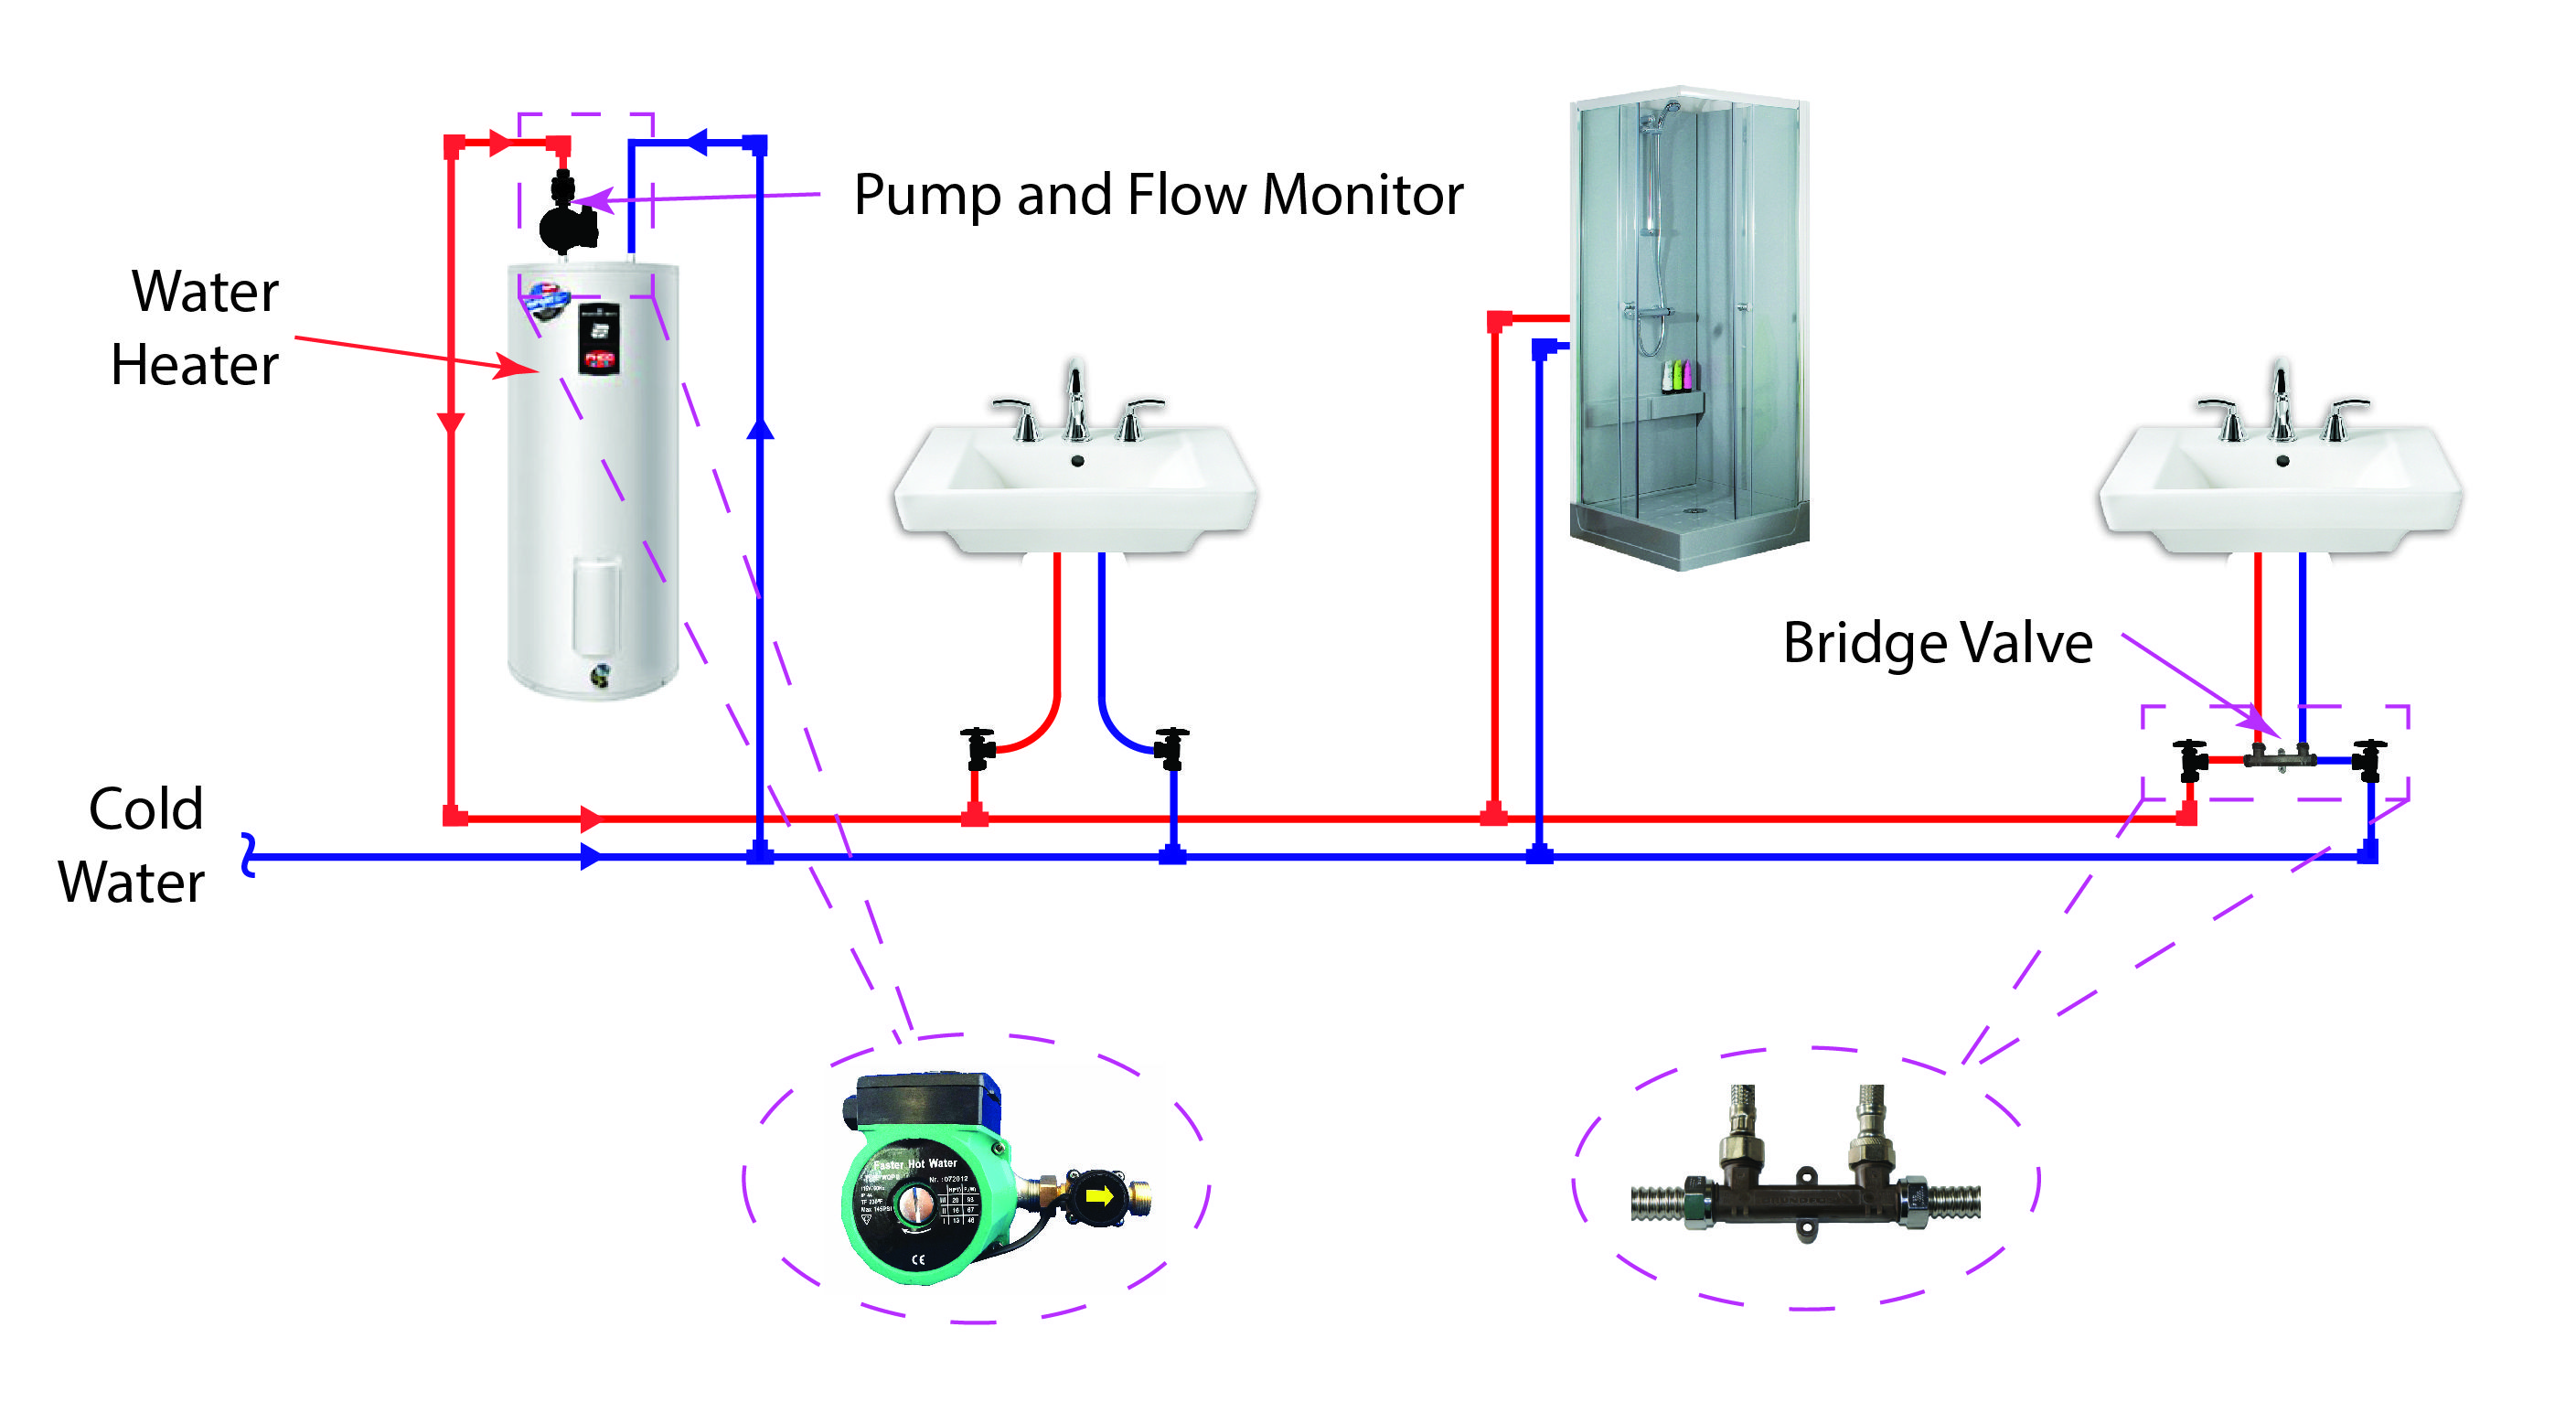 Hot Water Plumbing Diagram Wiring Diagram Schematics